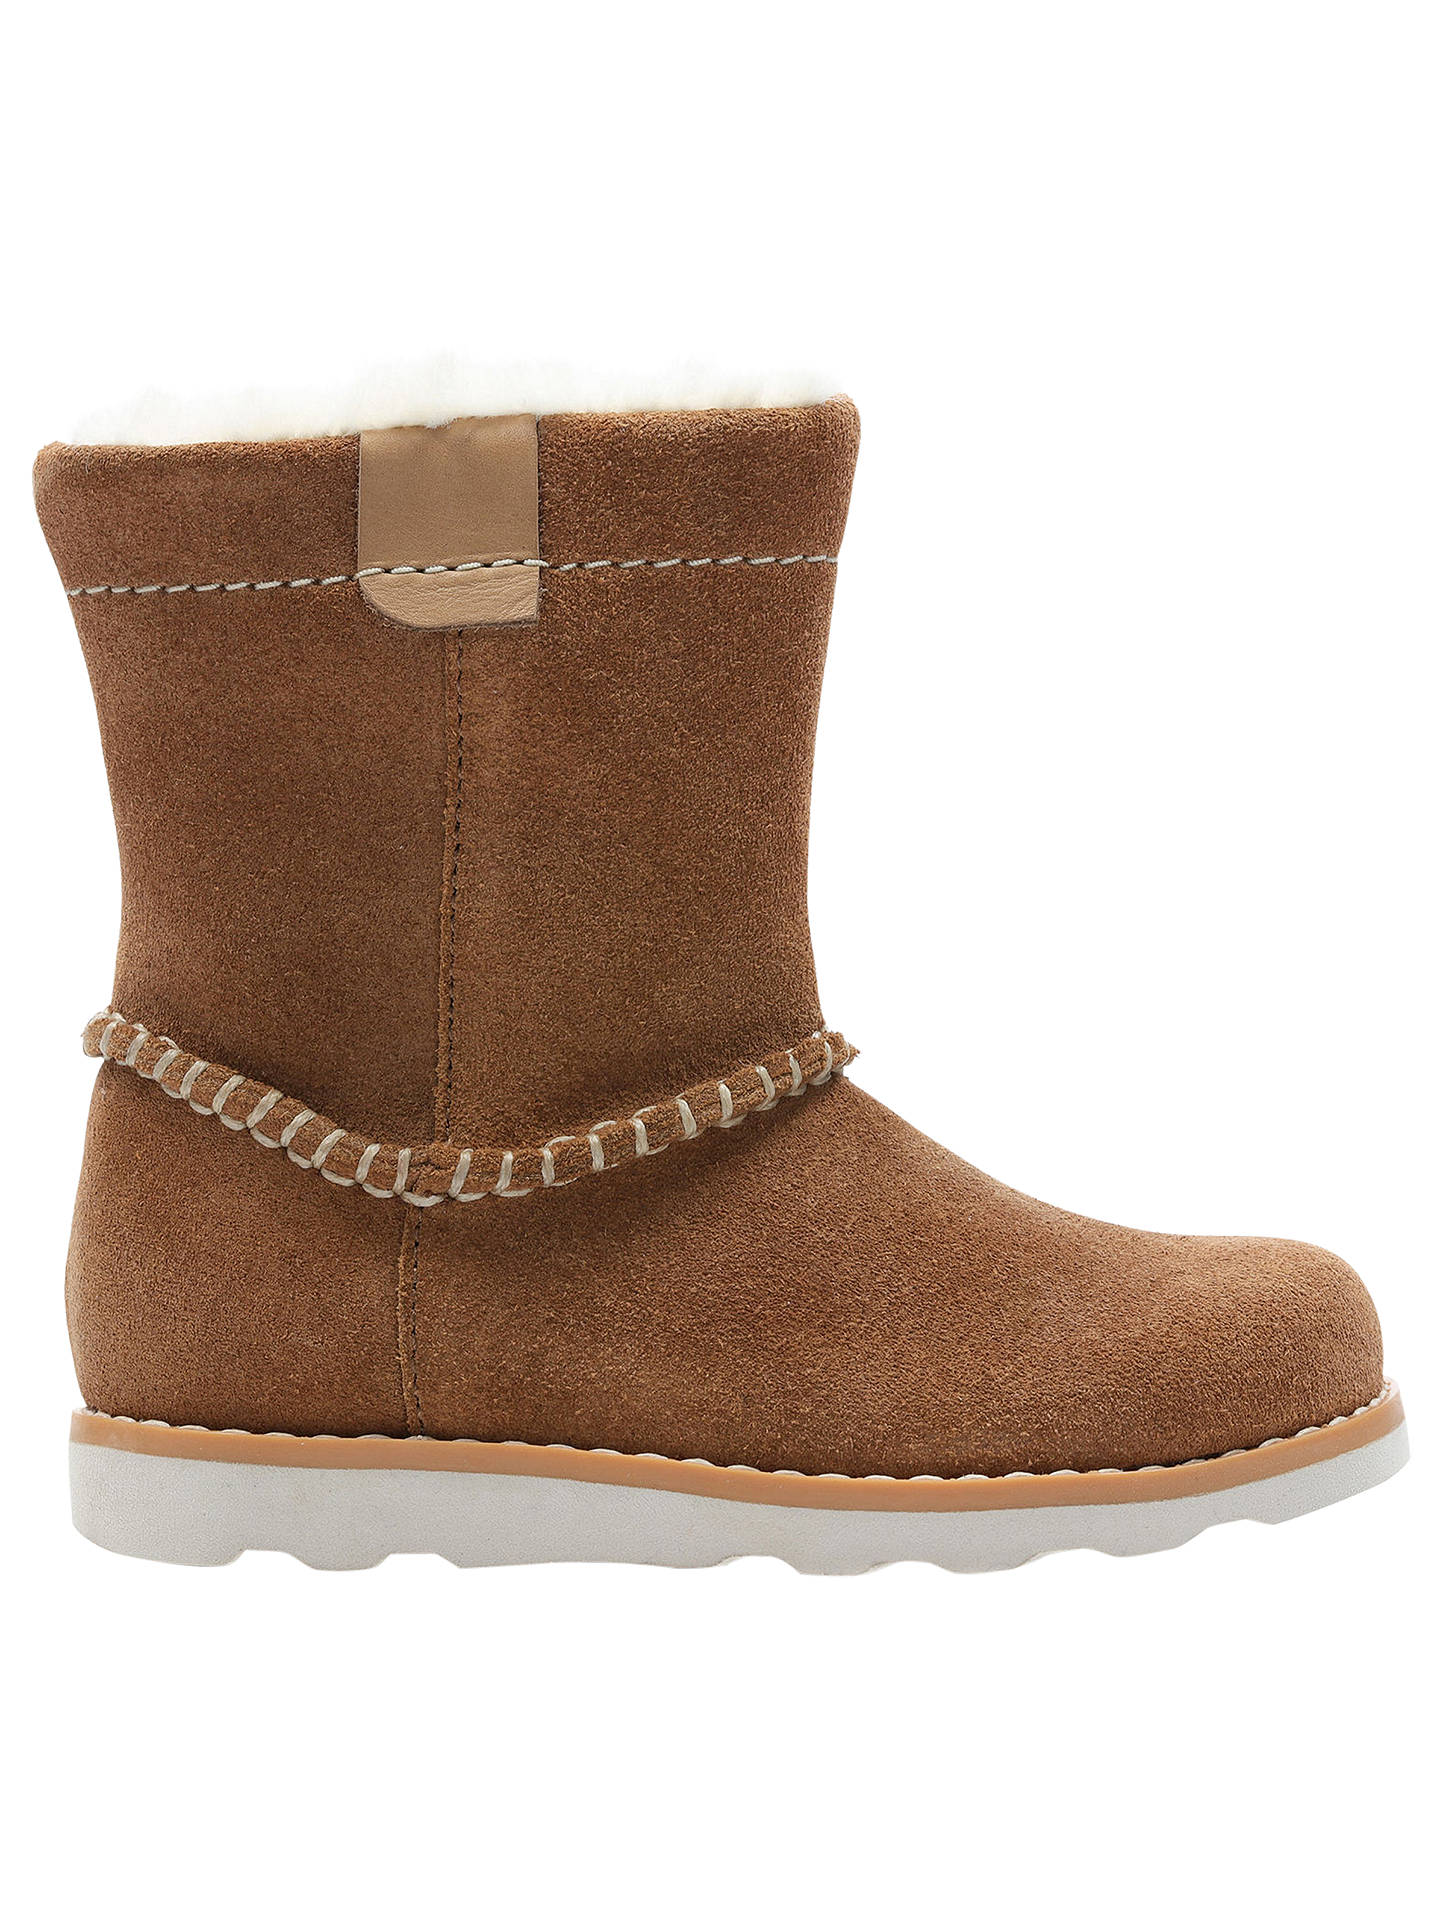 a6059925 Buy Clarks Children's Pre School Crown Piper Leather Boots, Tan, 7F Jnr  Online at